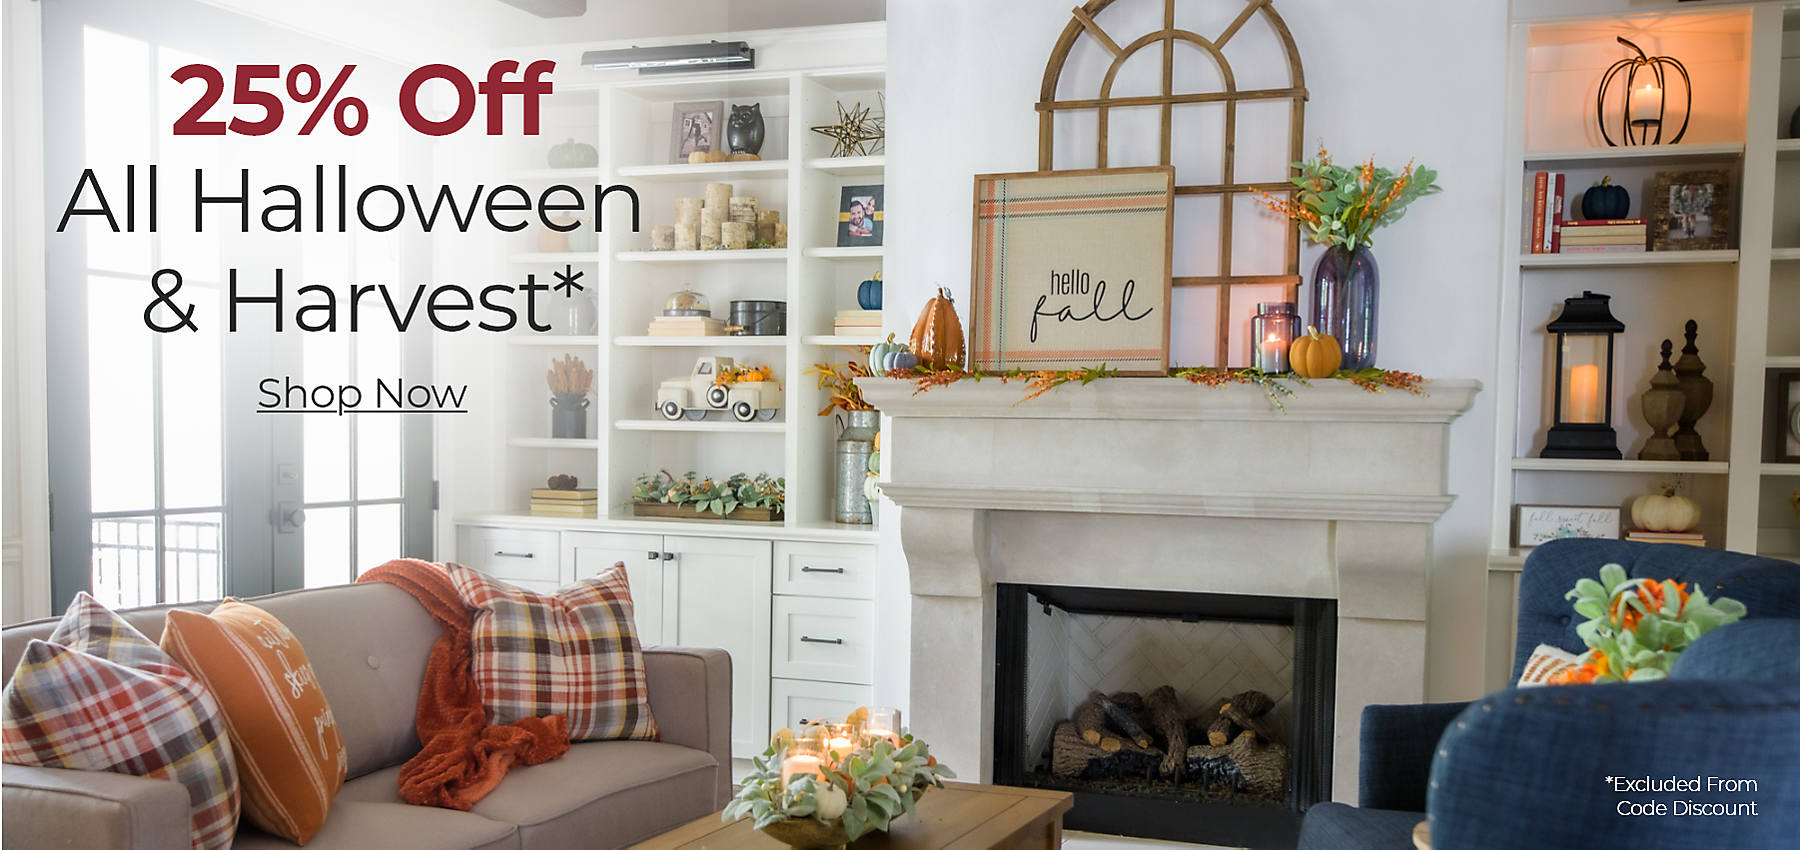 Harvest and Halloween 25% off